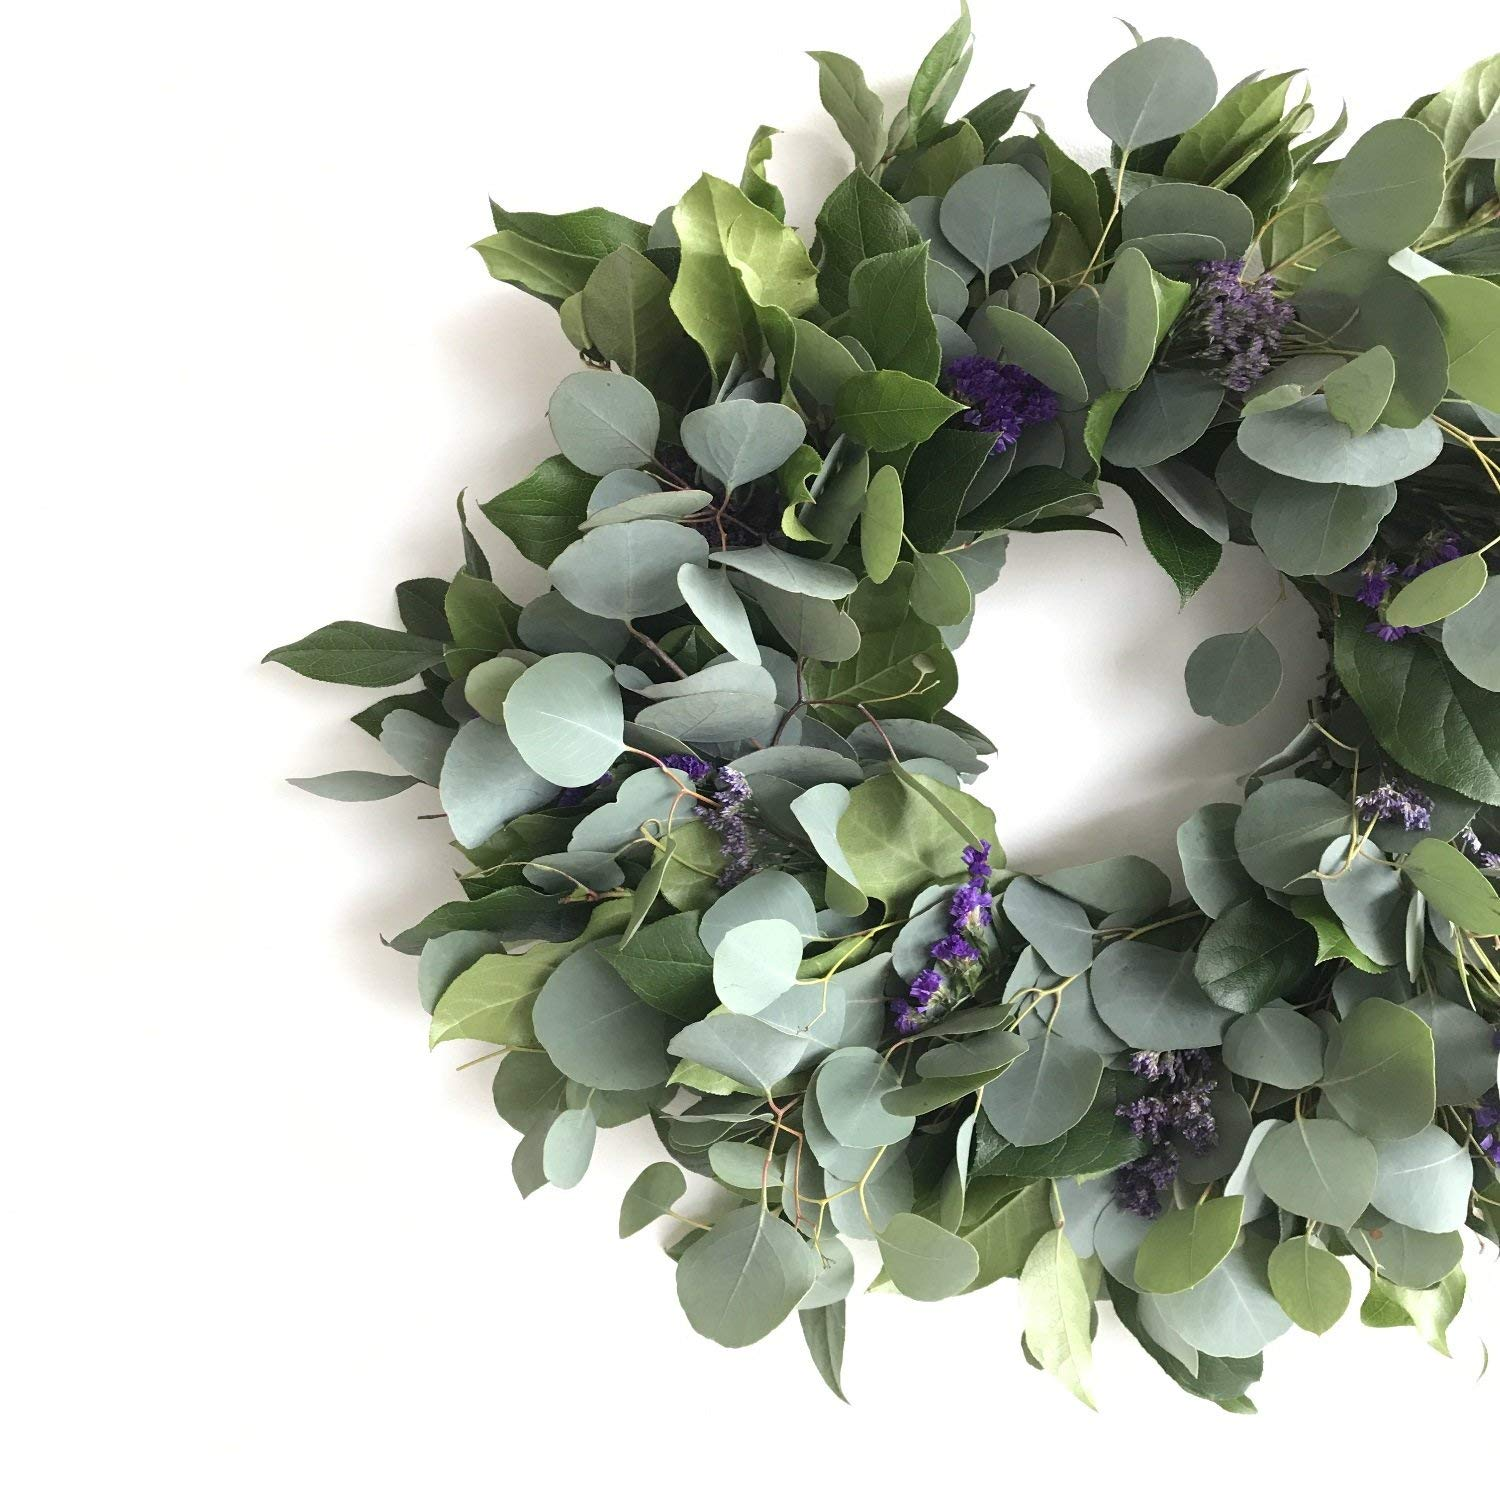 Club Botanic English Statice Arya Wreath